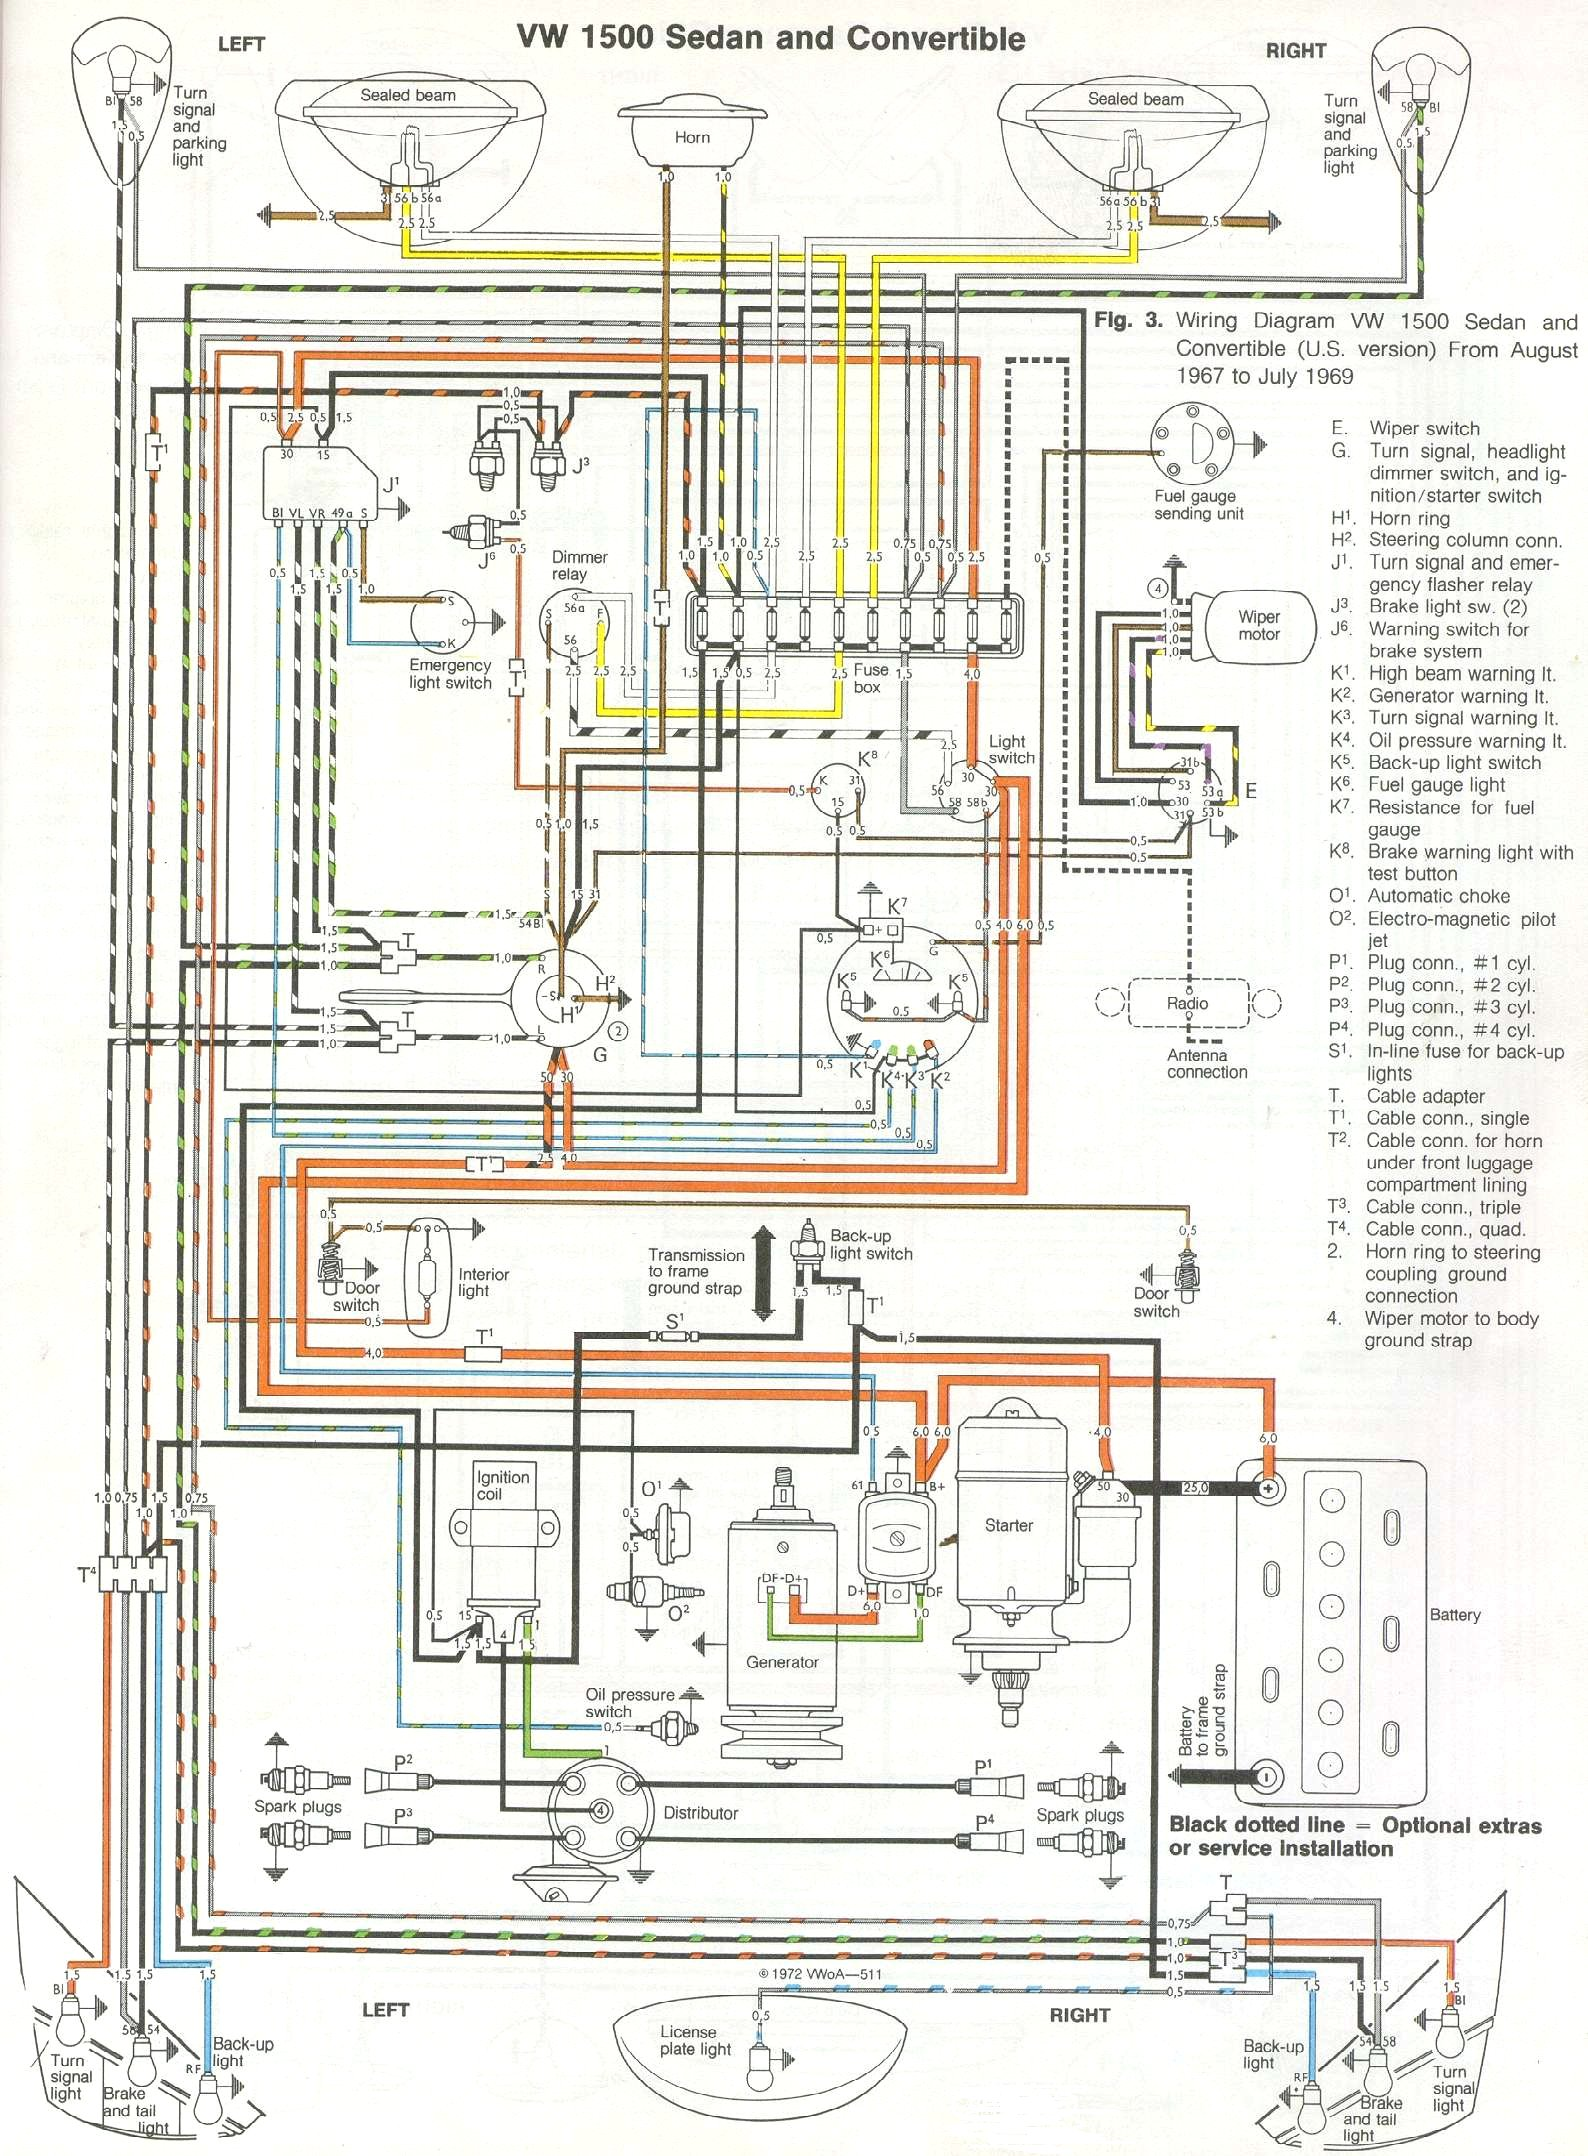 bug_6869 1970 vw beetle wiring diagram 1967 vw beetle wiring diagram wiring harness for 1967 vw beetle at gsmx.co